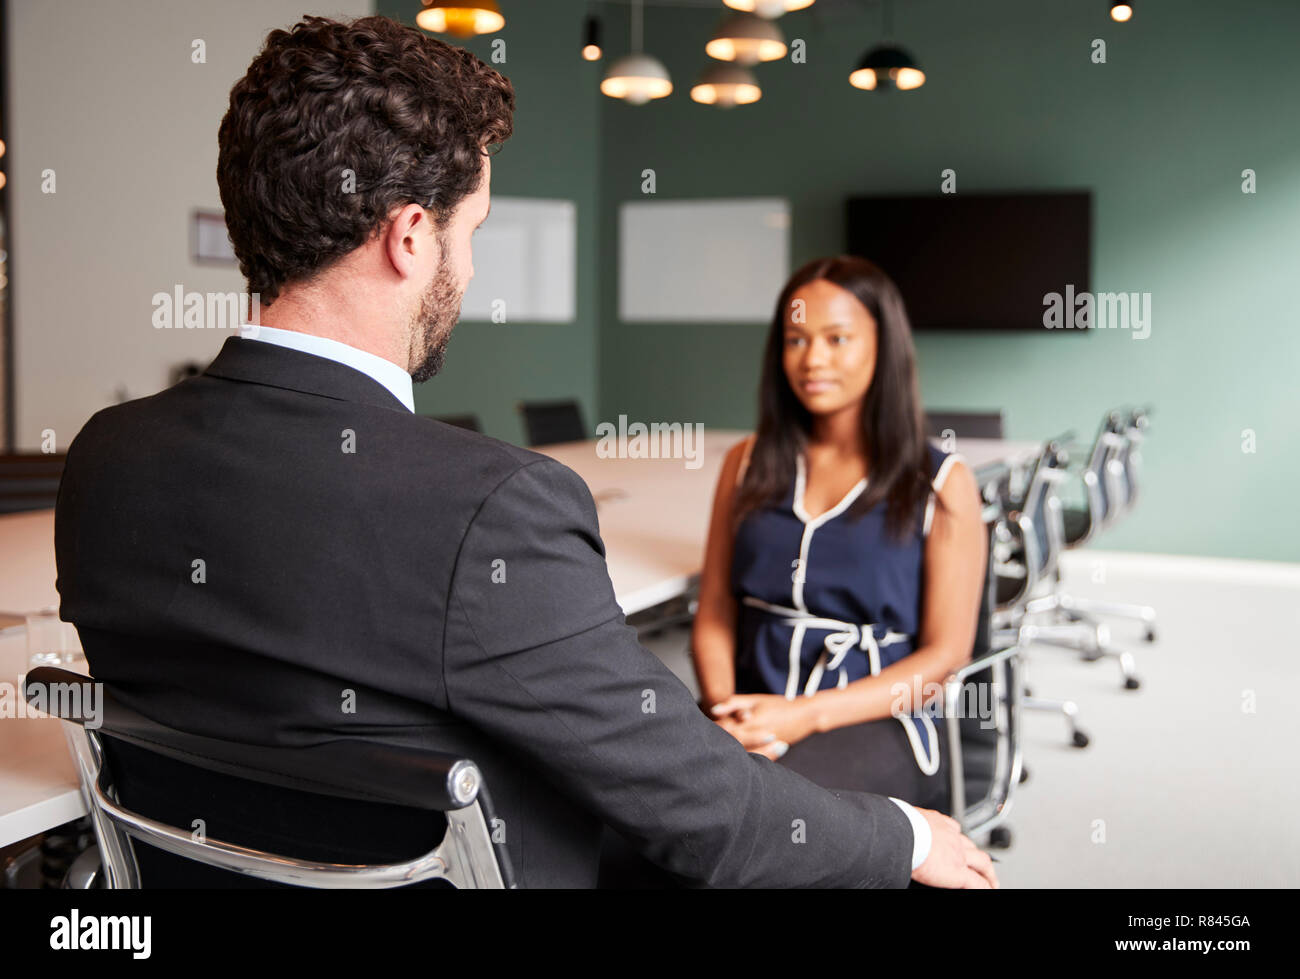 Businessman Interviewing Female Candidate At Graduate Recruitment Assessment Day In Office - Stock Image